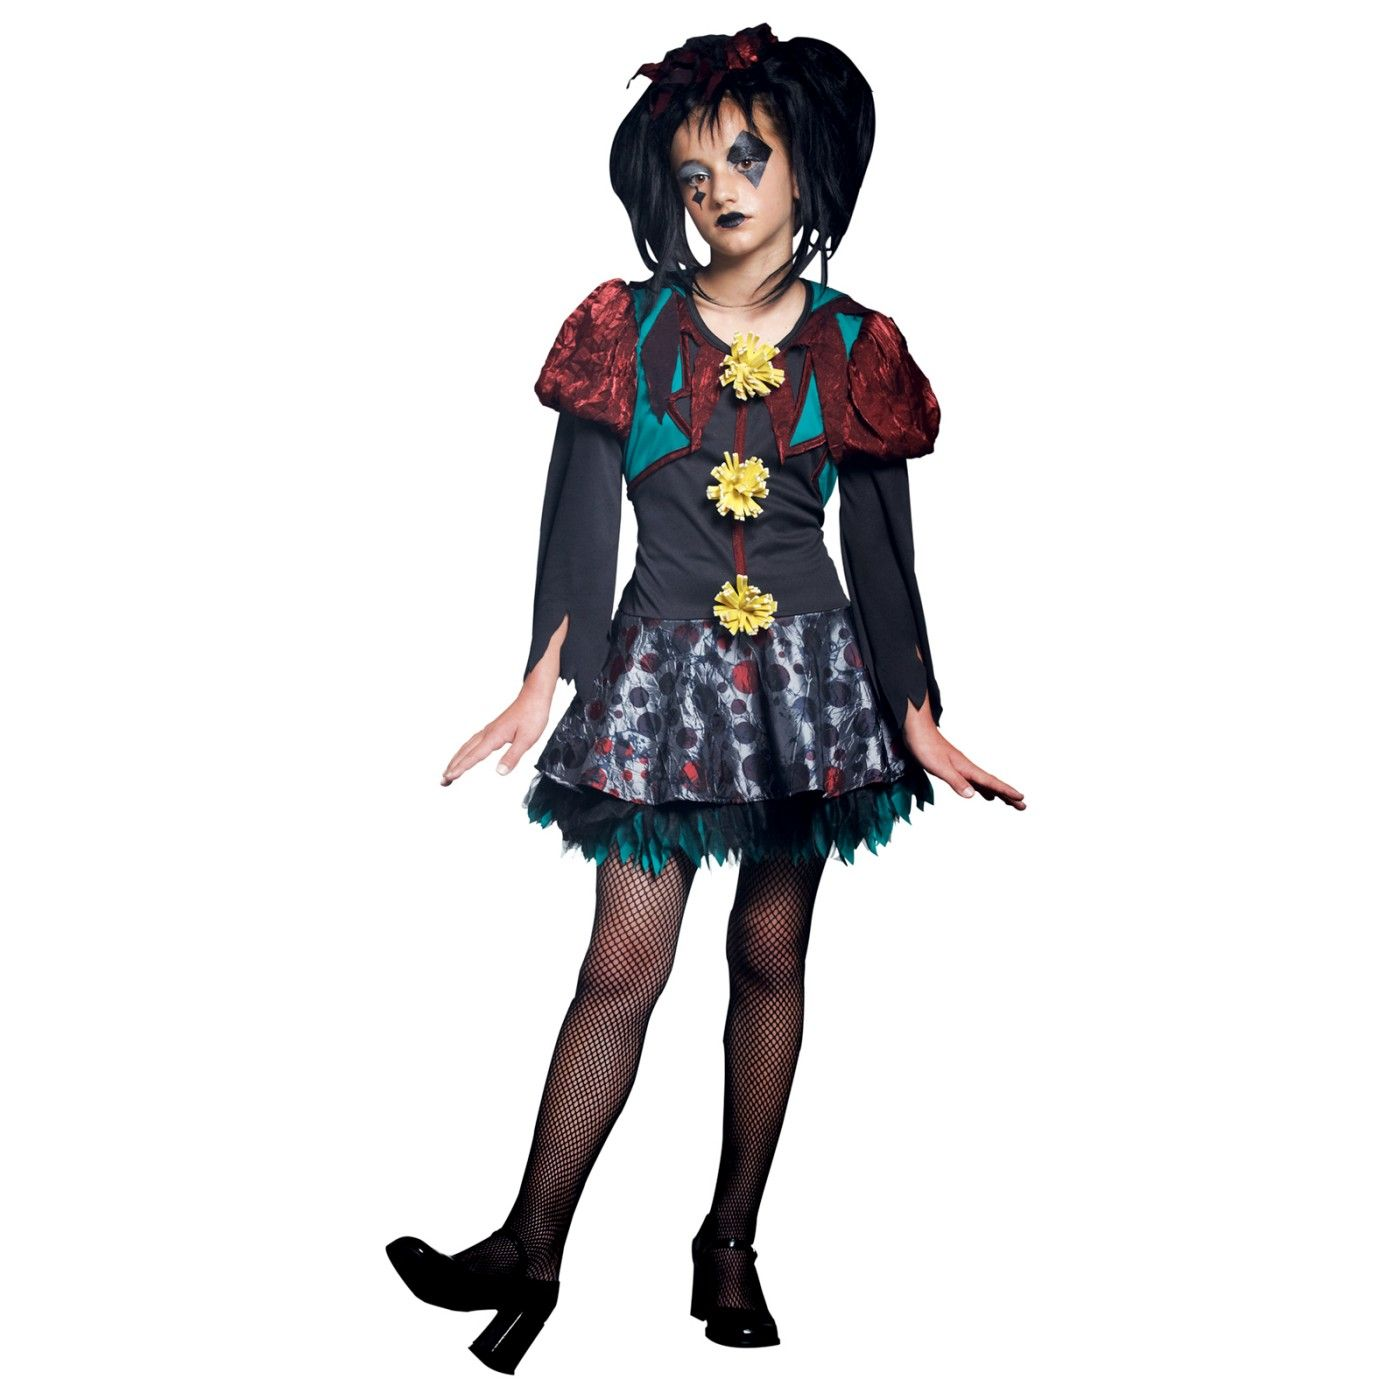 Gothic Scary Merry Girl Costume Halloween costumes for